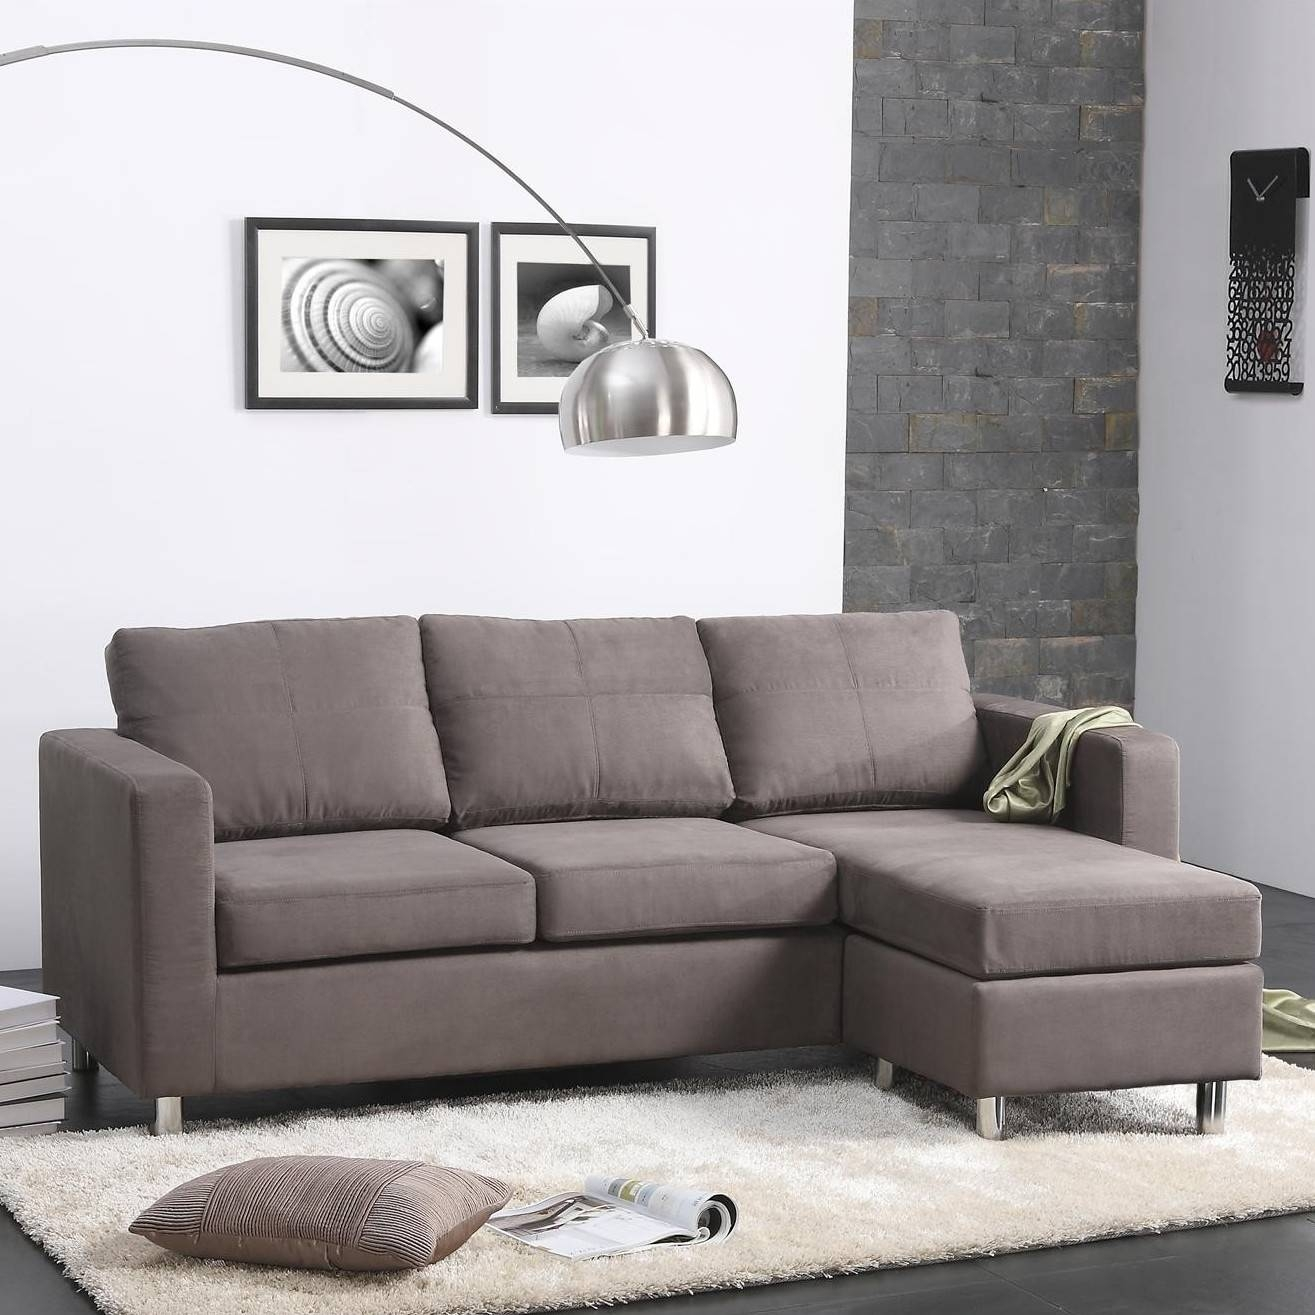 Sofas Center : Mini Sectional Sofa With Chaise Wholesalersmini inside Mini Sectional Sofas (Image 28 of 30)